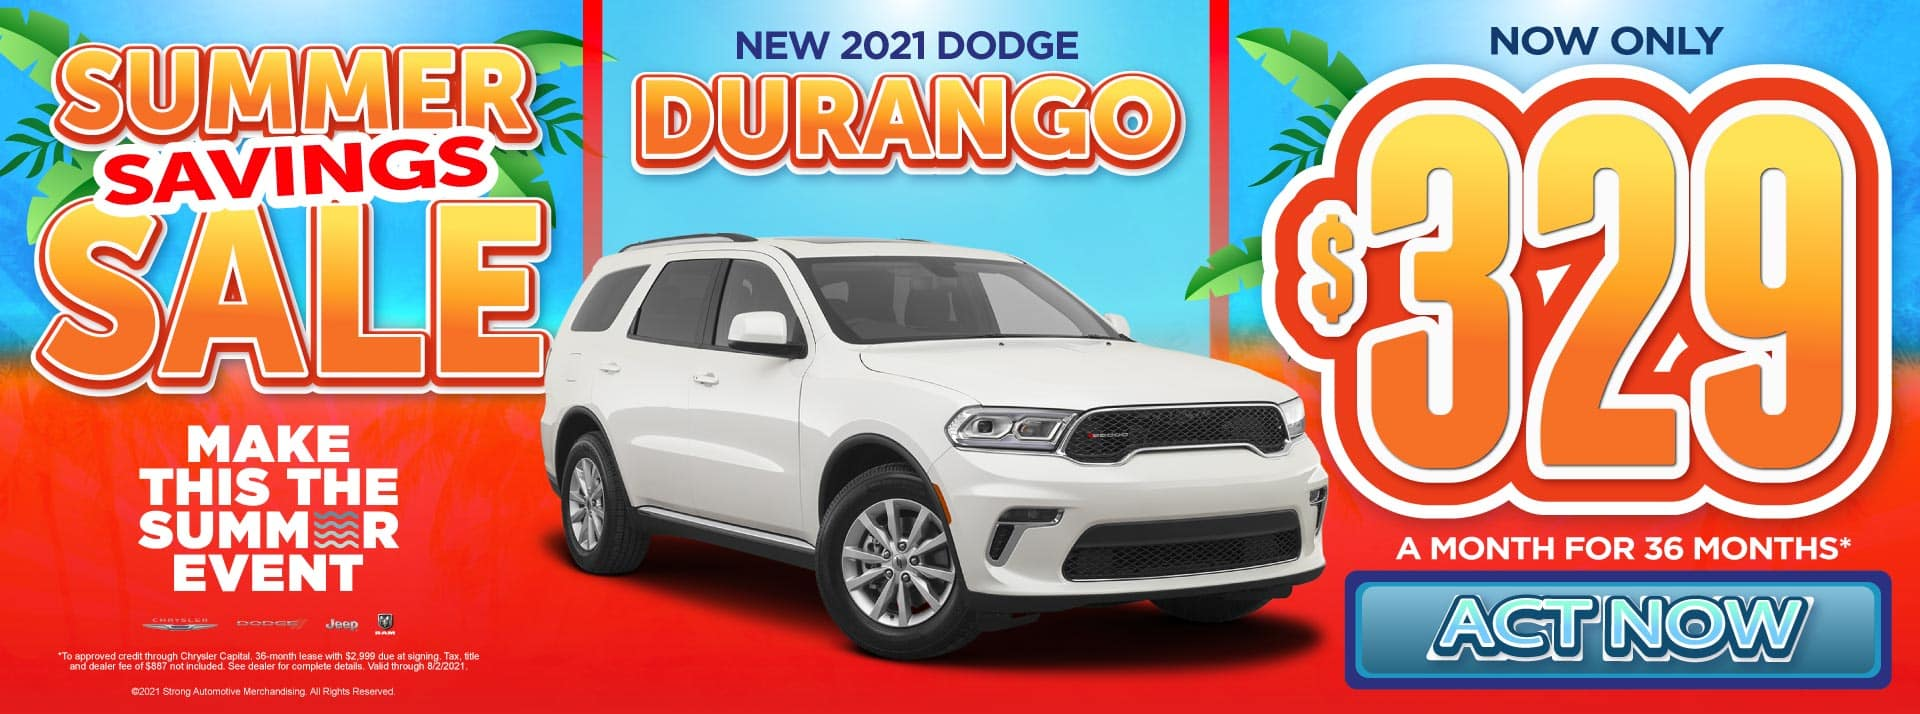 New 2021 Dodge Durango - Now only $329 a month for 36 months - Act Now